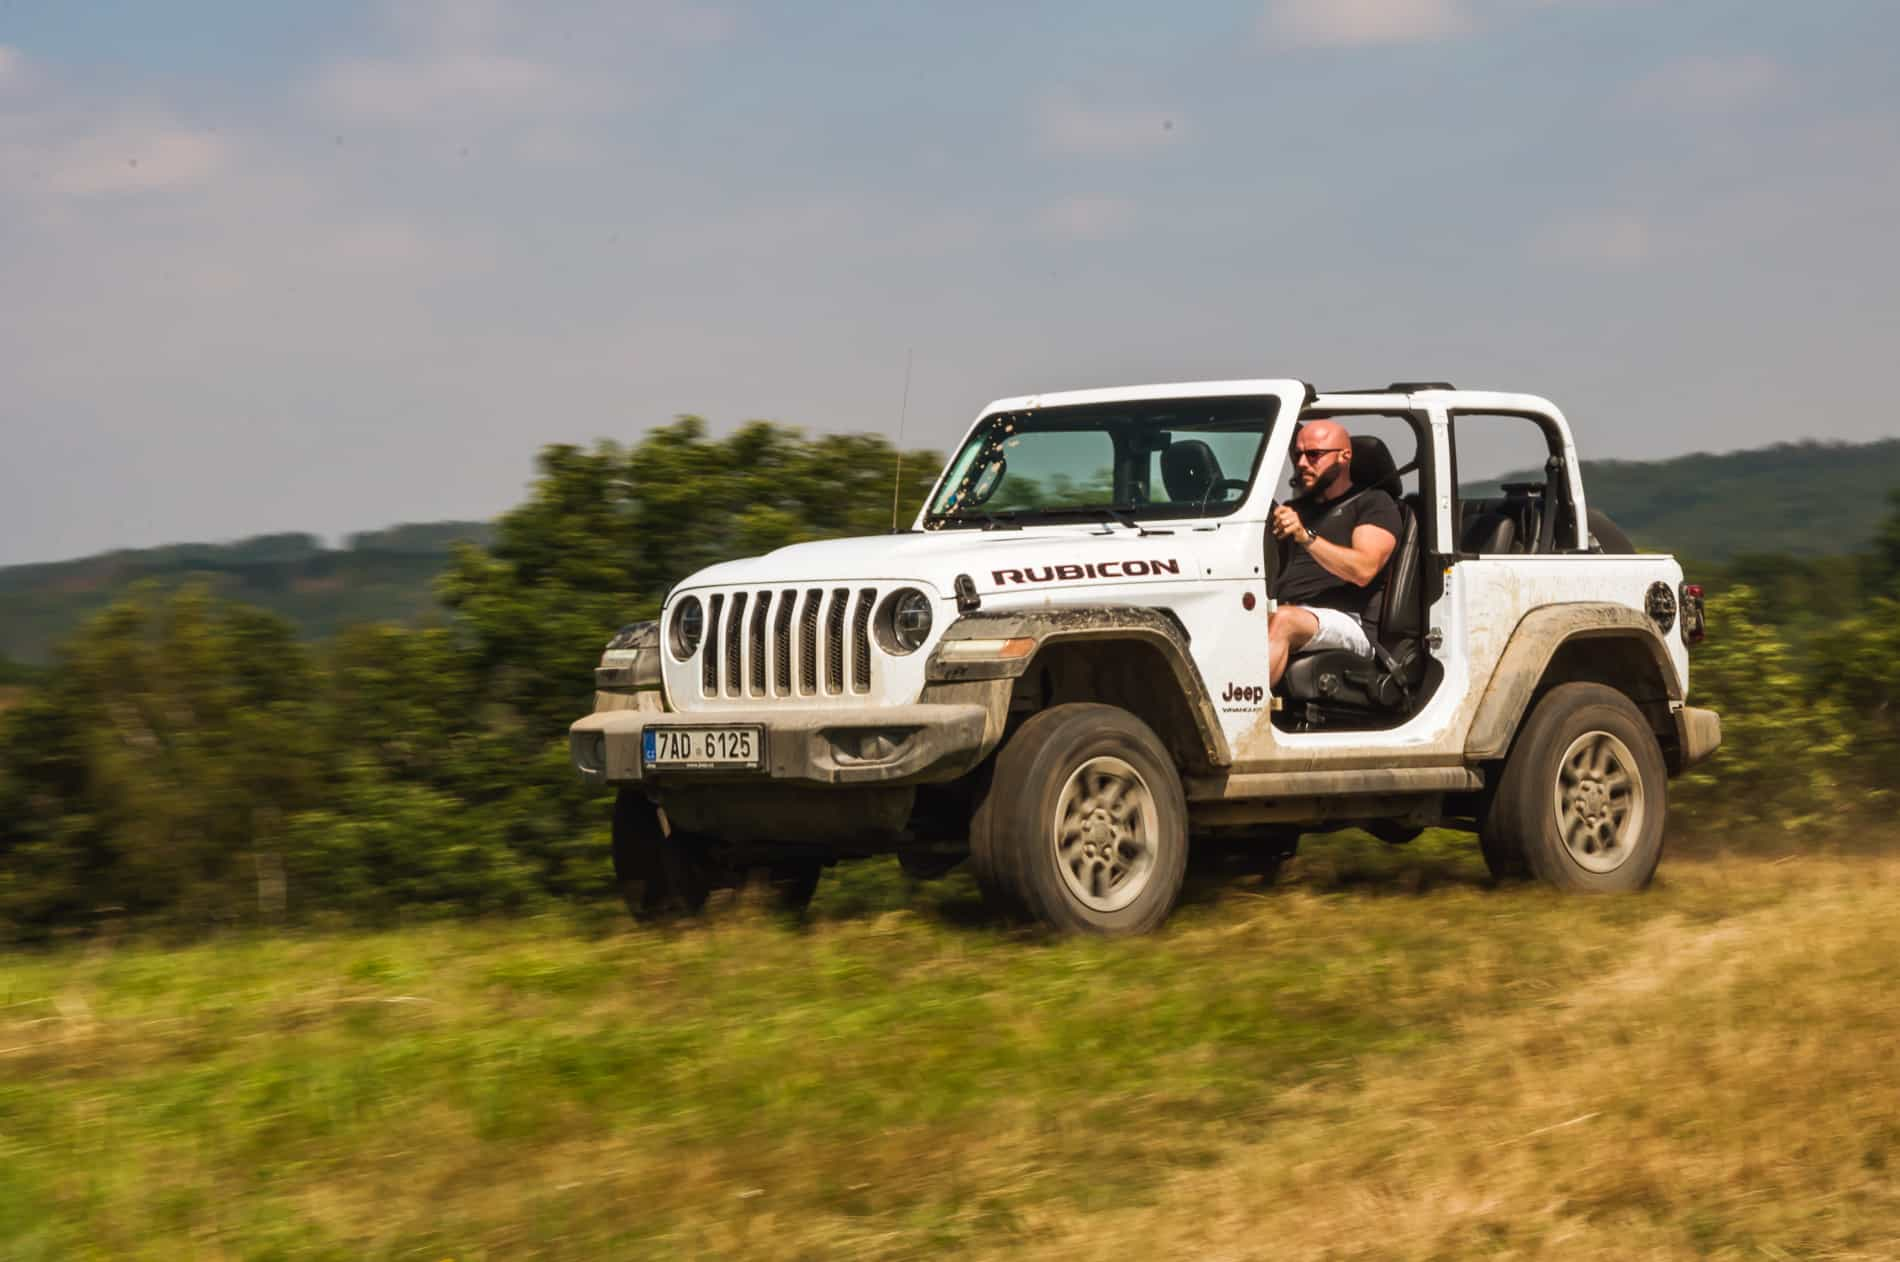 jeep wrangler rubicon (63 of 67)